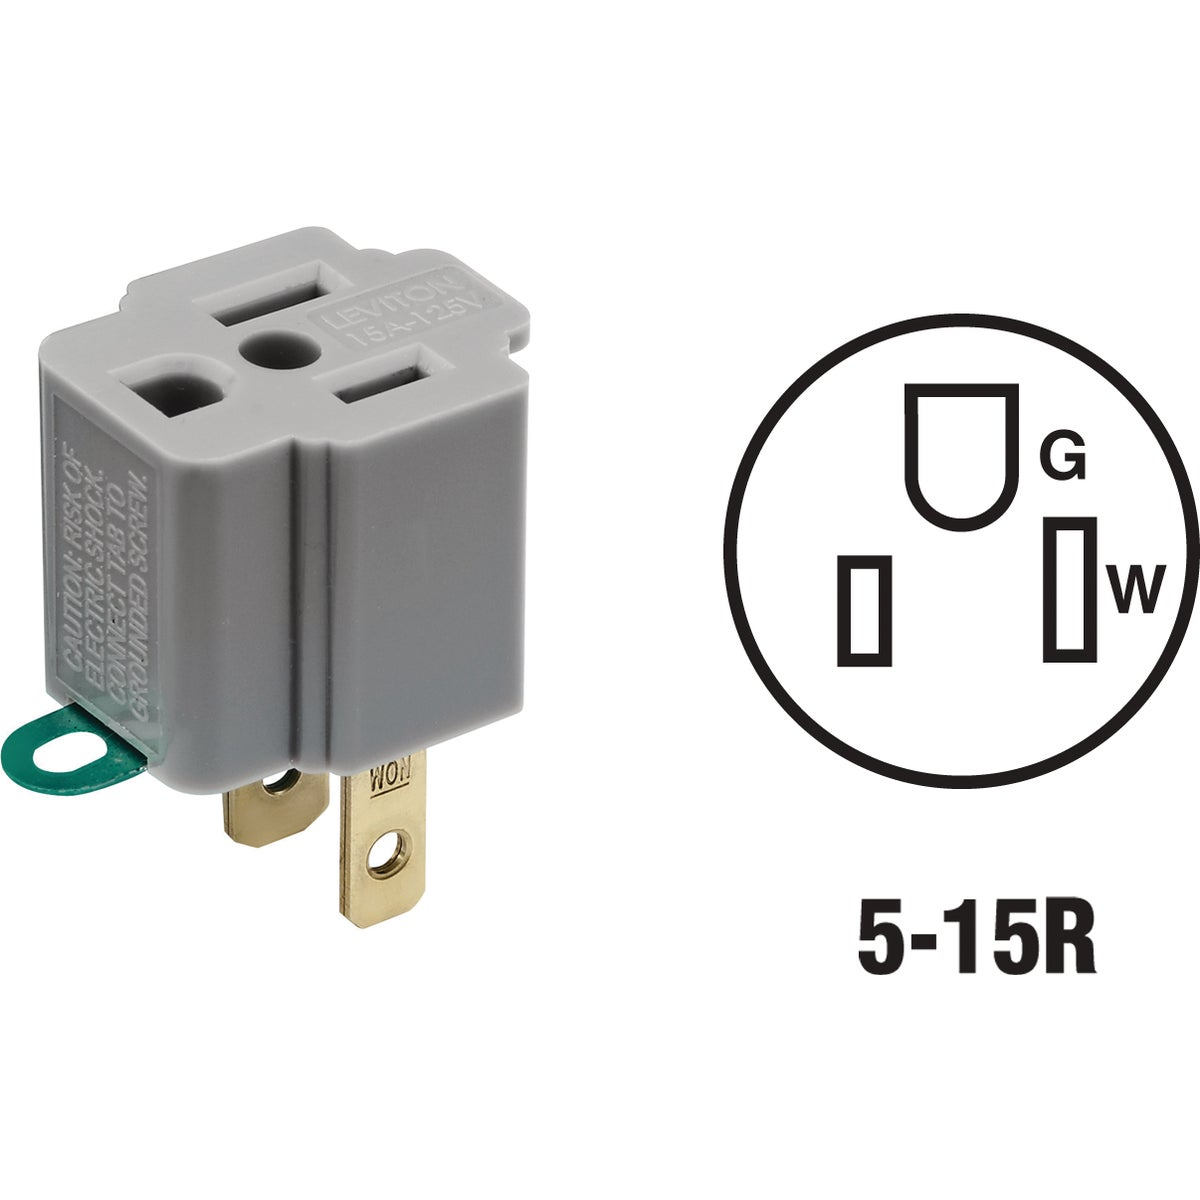 GRAY OUTLET ADAPTER - 028-274 by Leviton Mfg Co